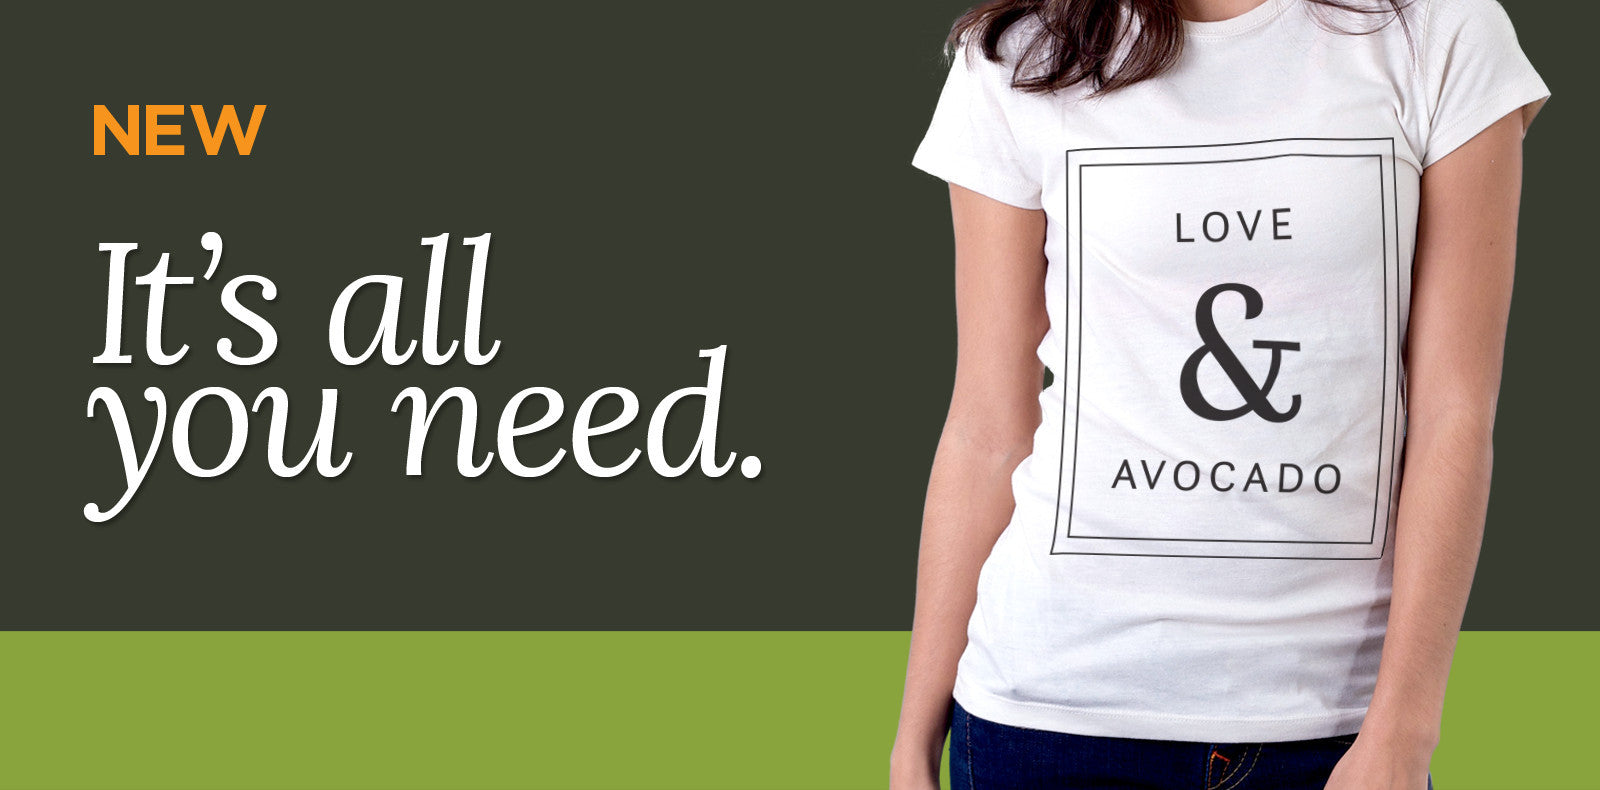 all you need is love & avocado